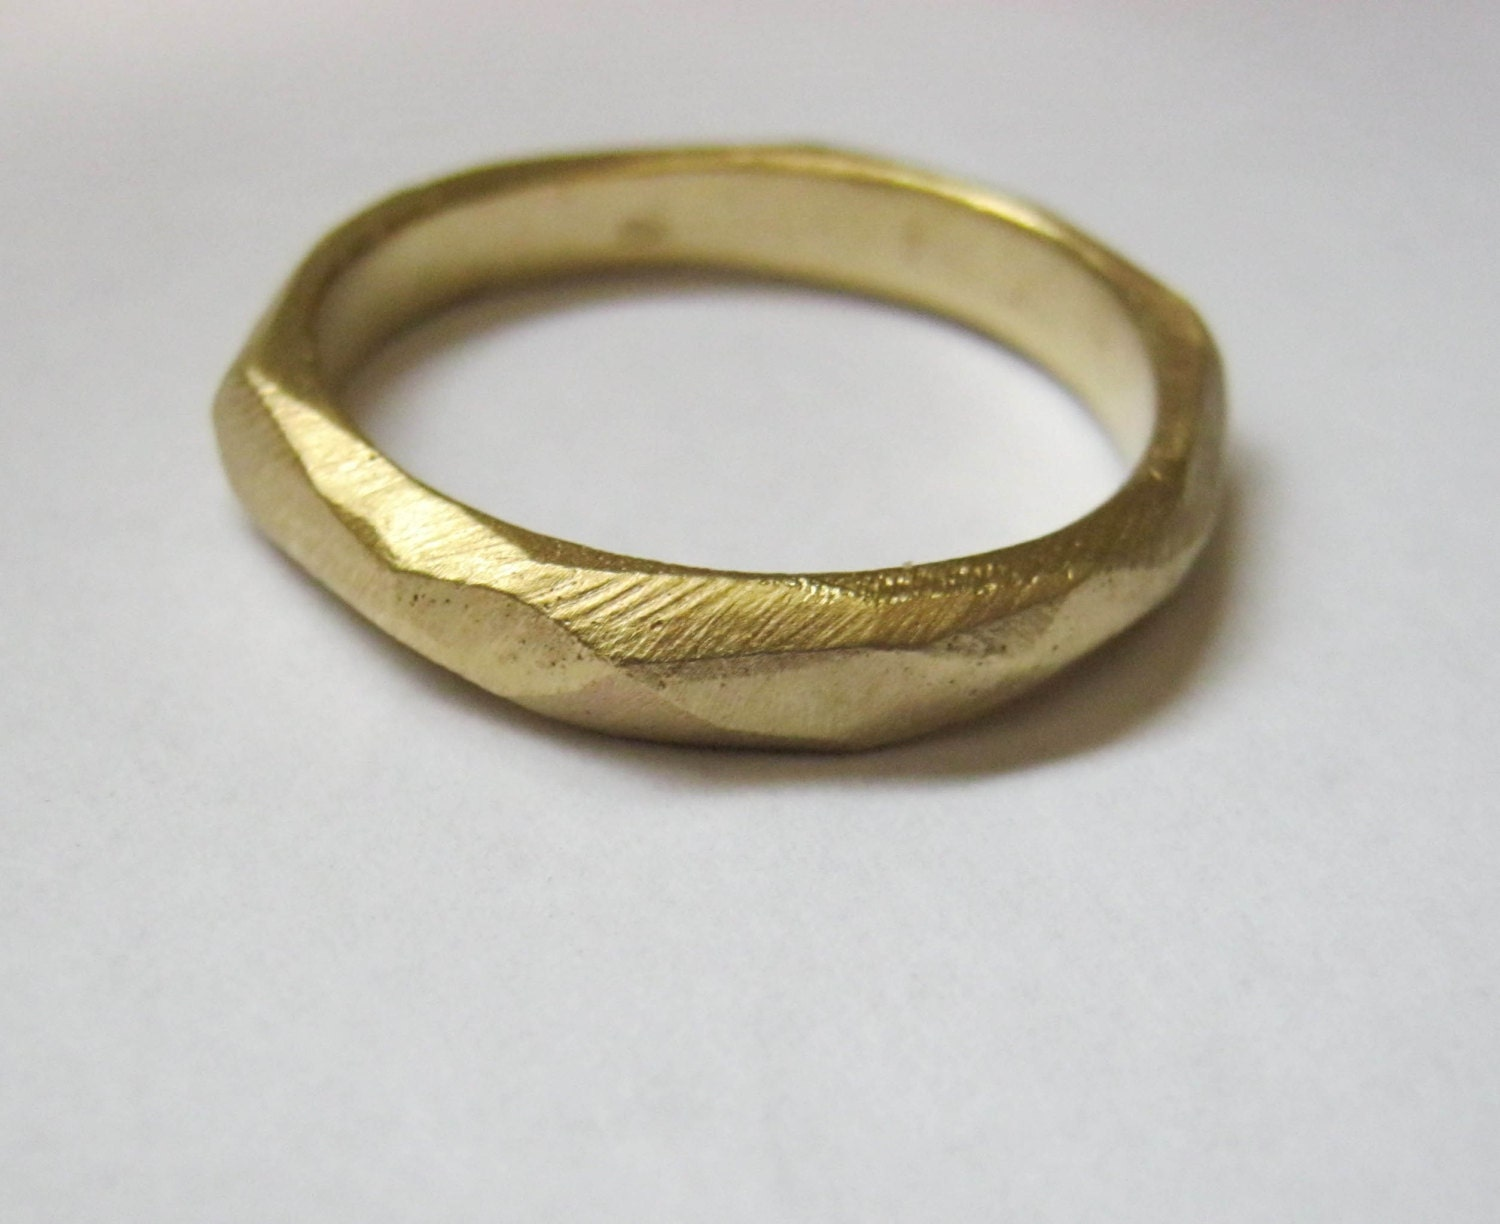 vintage il zoom ring design mens gold band wide fullxfull listing wedding engraved bands